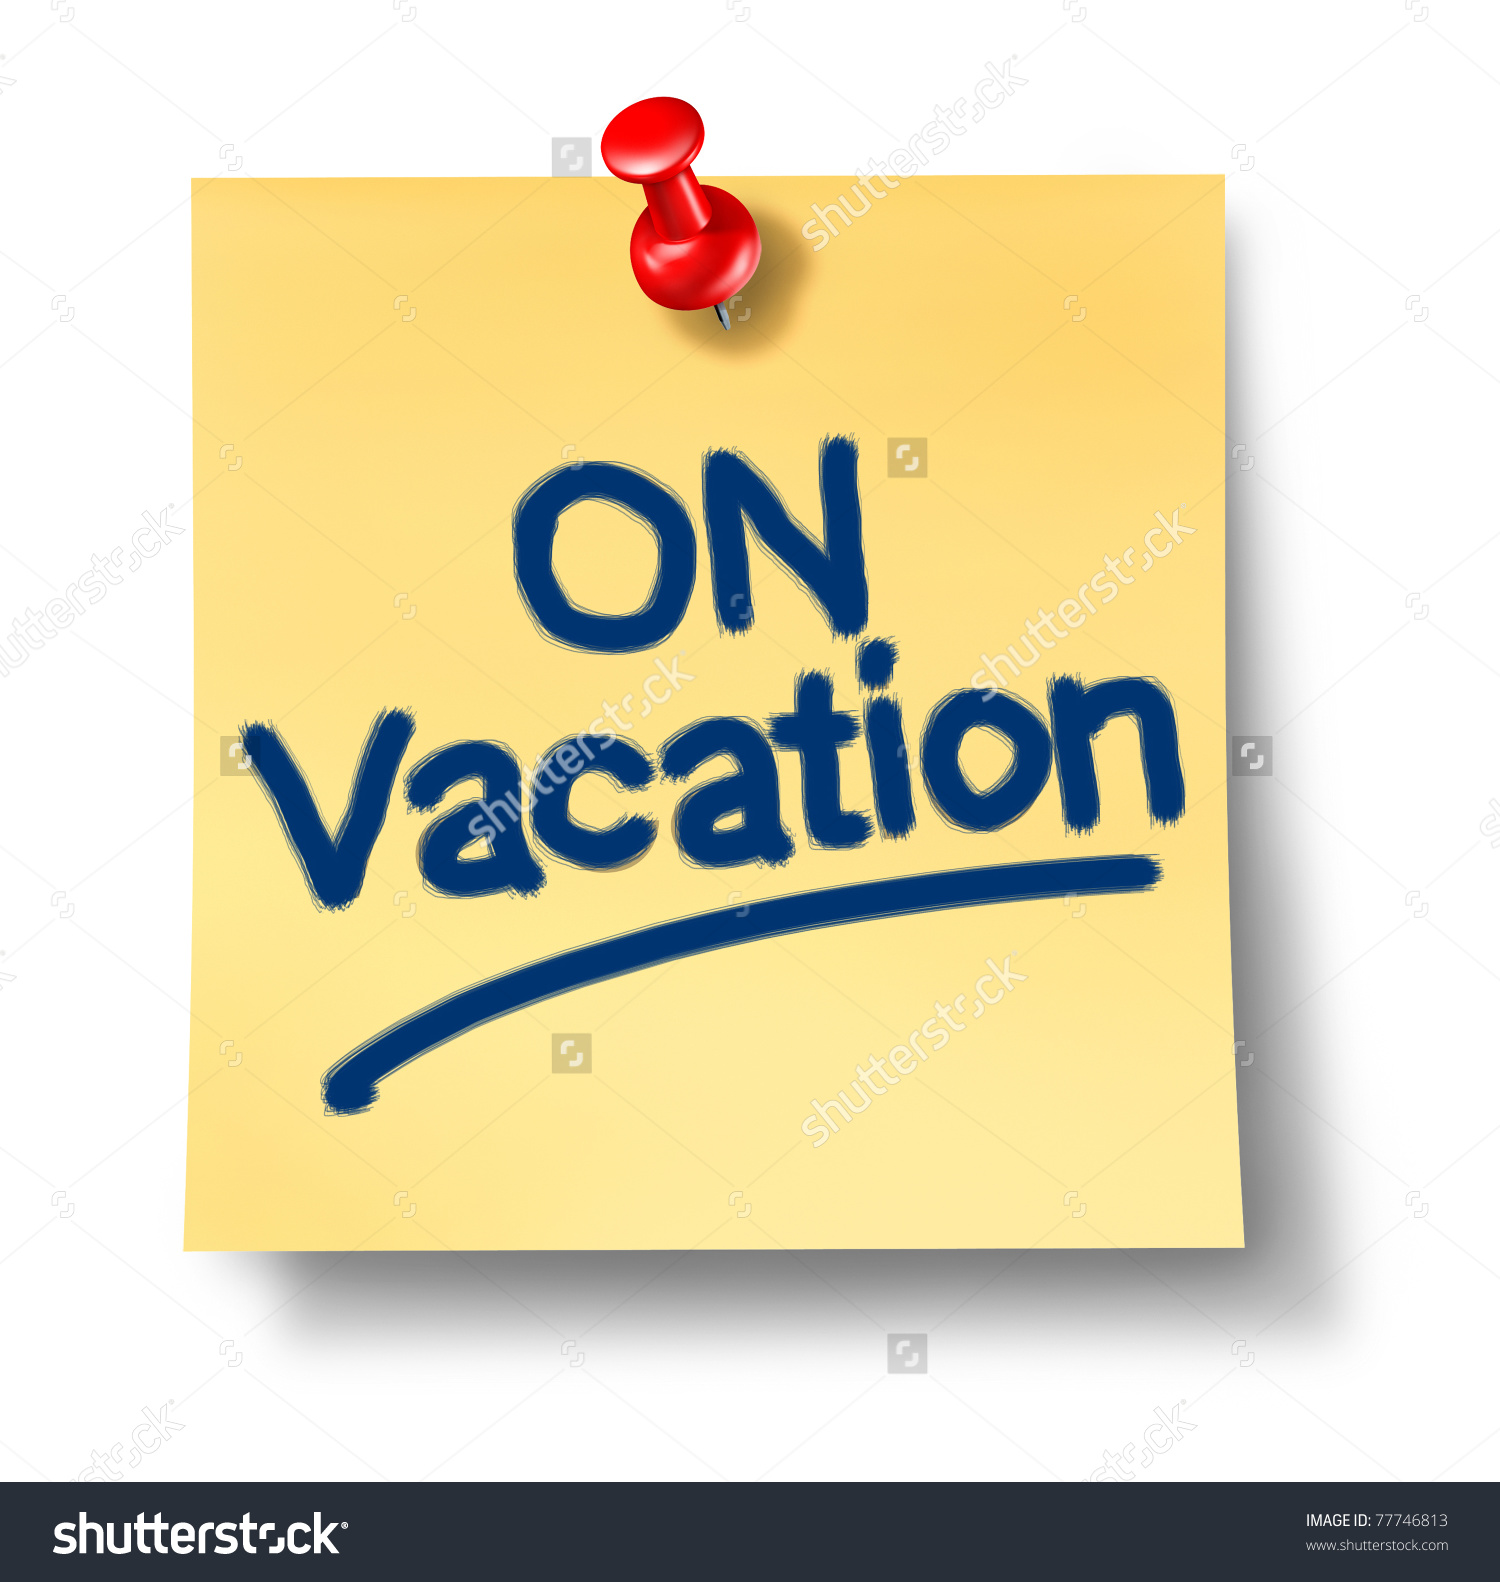 Vacation from work clipart graphic free download On Vacation Office Note Isolated Representing Stock Illustration ... graphic free download